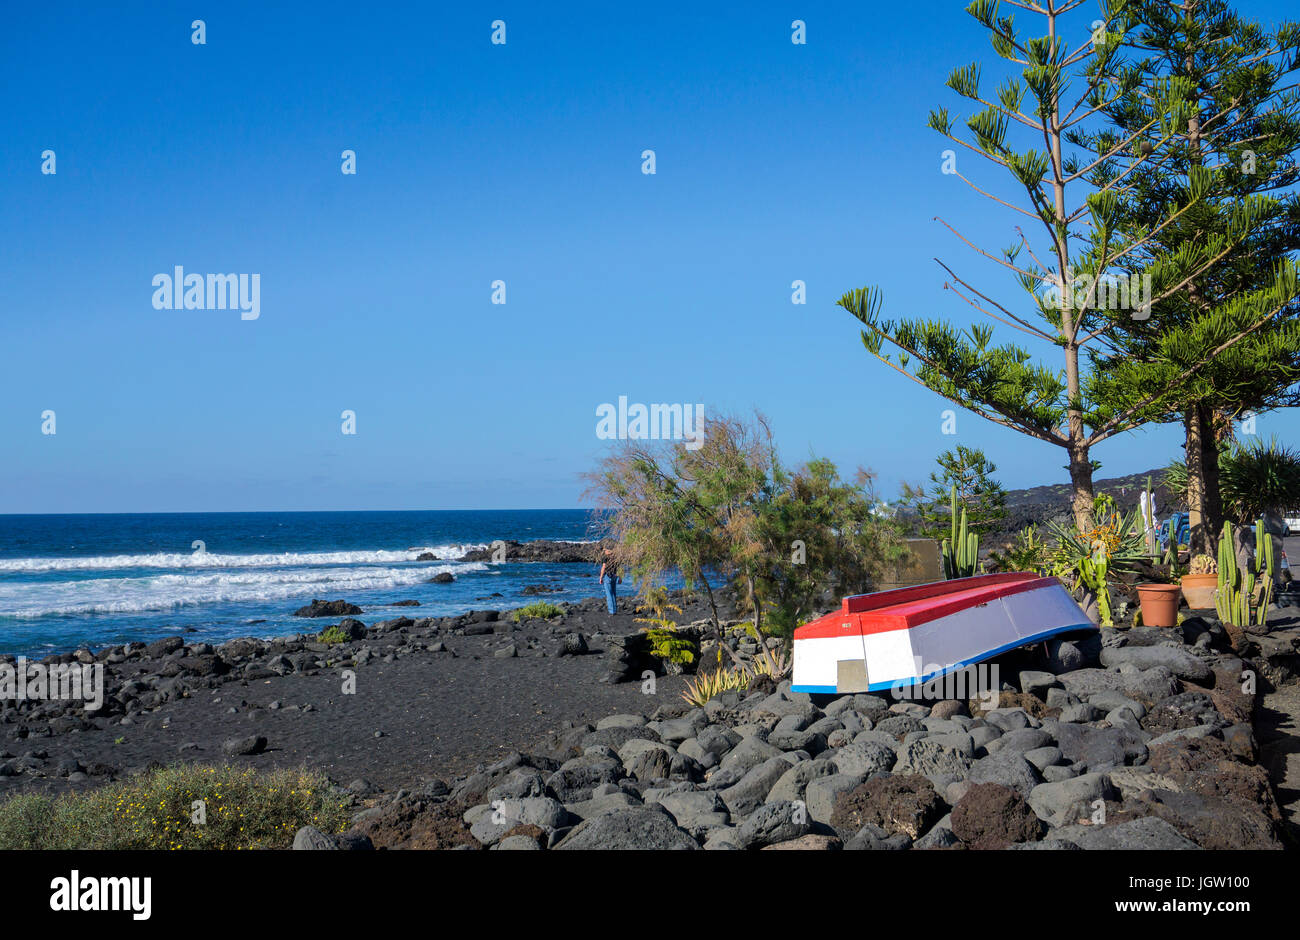 Fishing boat at the pebble beach of fishing village El Golfo, Lanzarote island, Canary islands, Spain, Europe - Stock Image